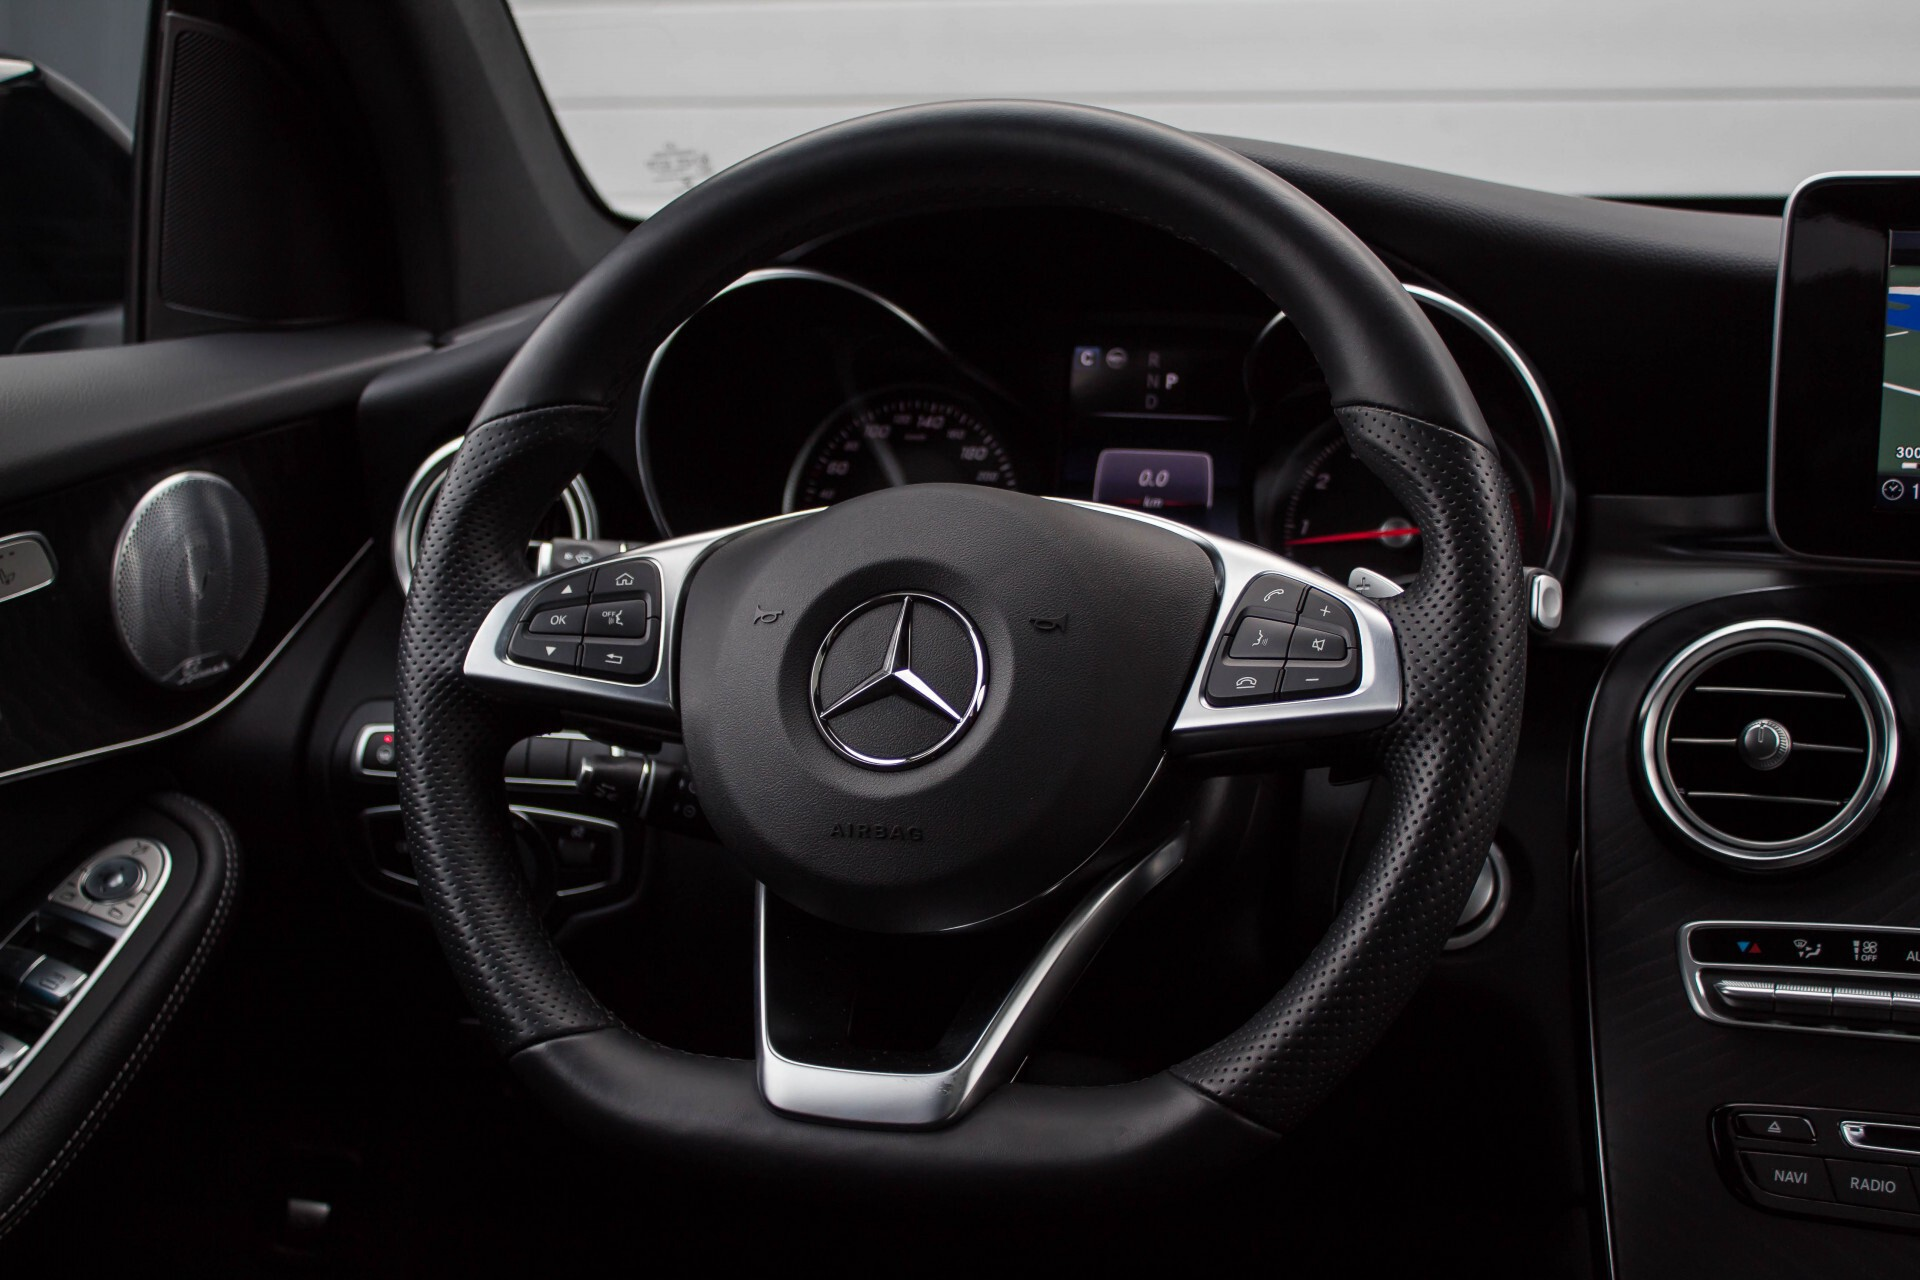 Mercedes-Benz GLC-Klasse 300 4-M AMG Panorama Distronic/Keyless/Burmester/Memory/Night Aut9 Foto 8